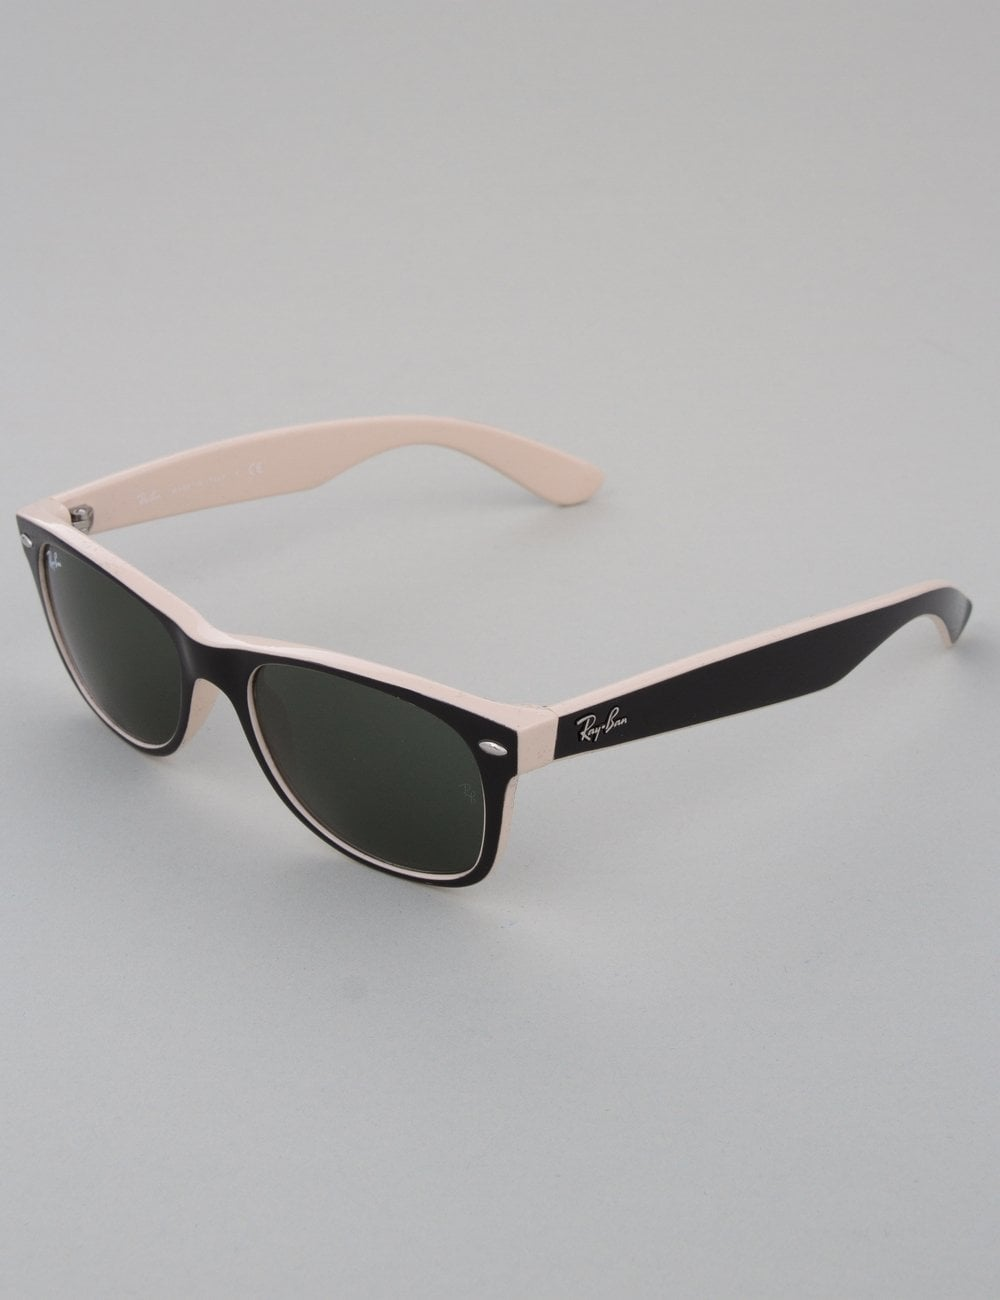 Ray-Ban New Wayfarer Sunglasses - Top Black on Beige    Crystal Green 4edbd133e79f3